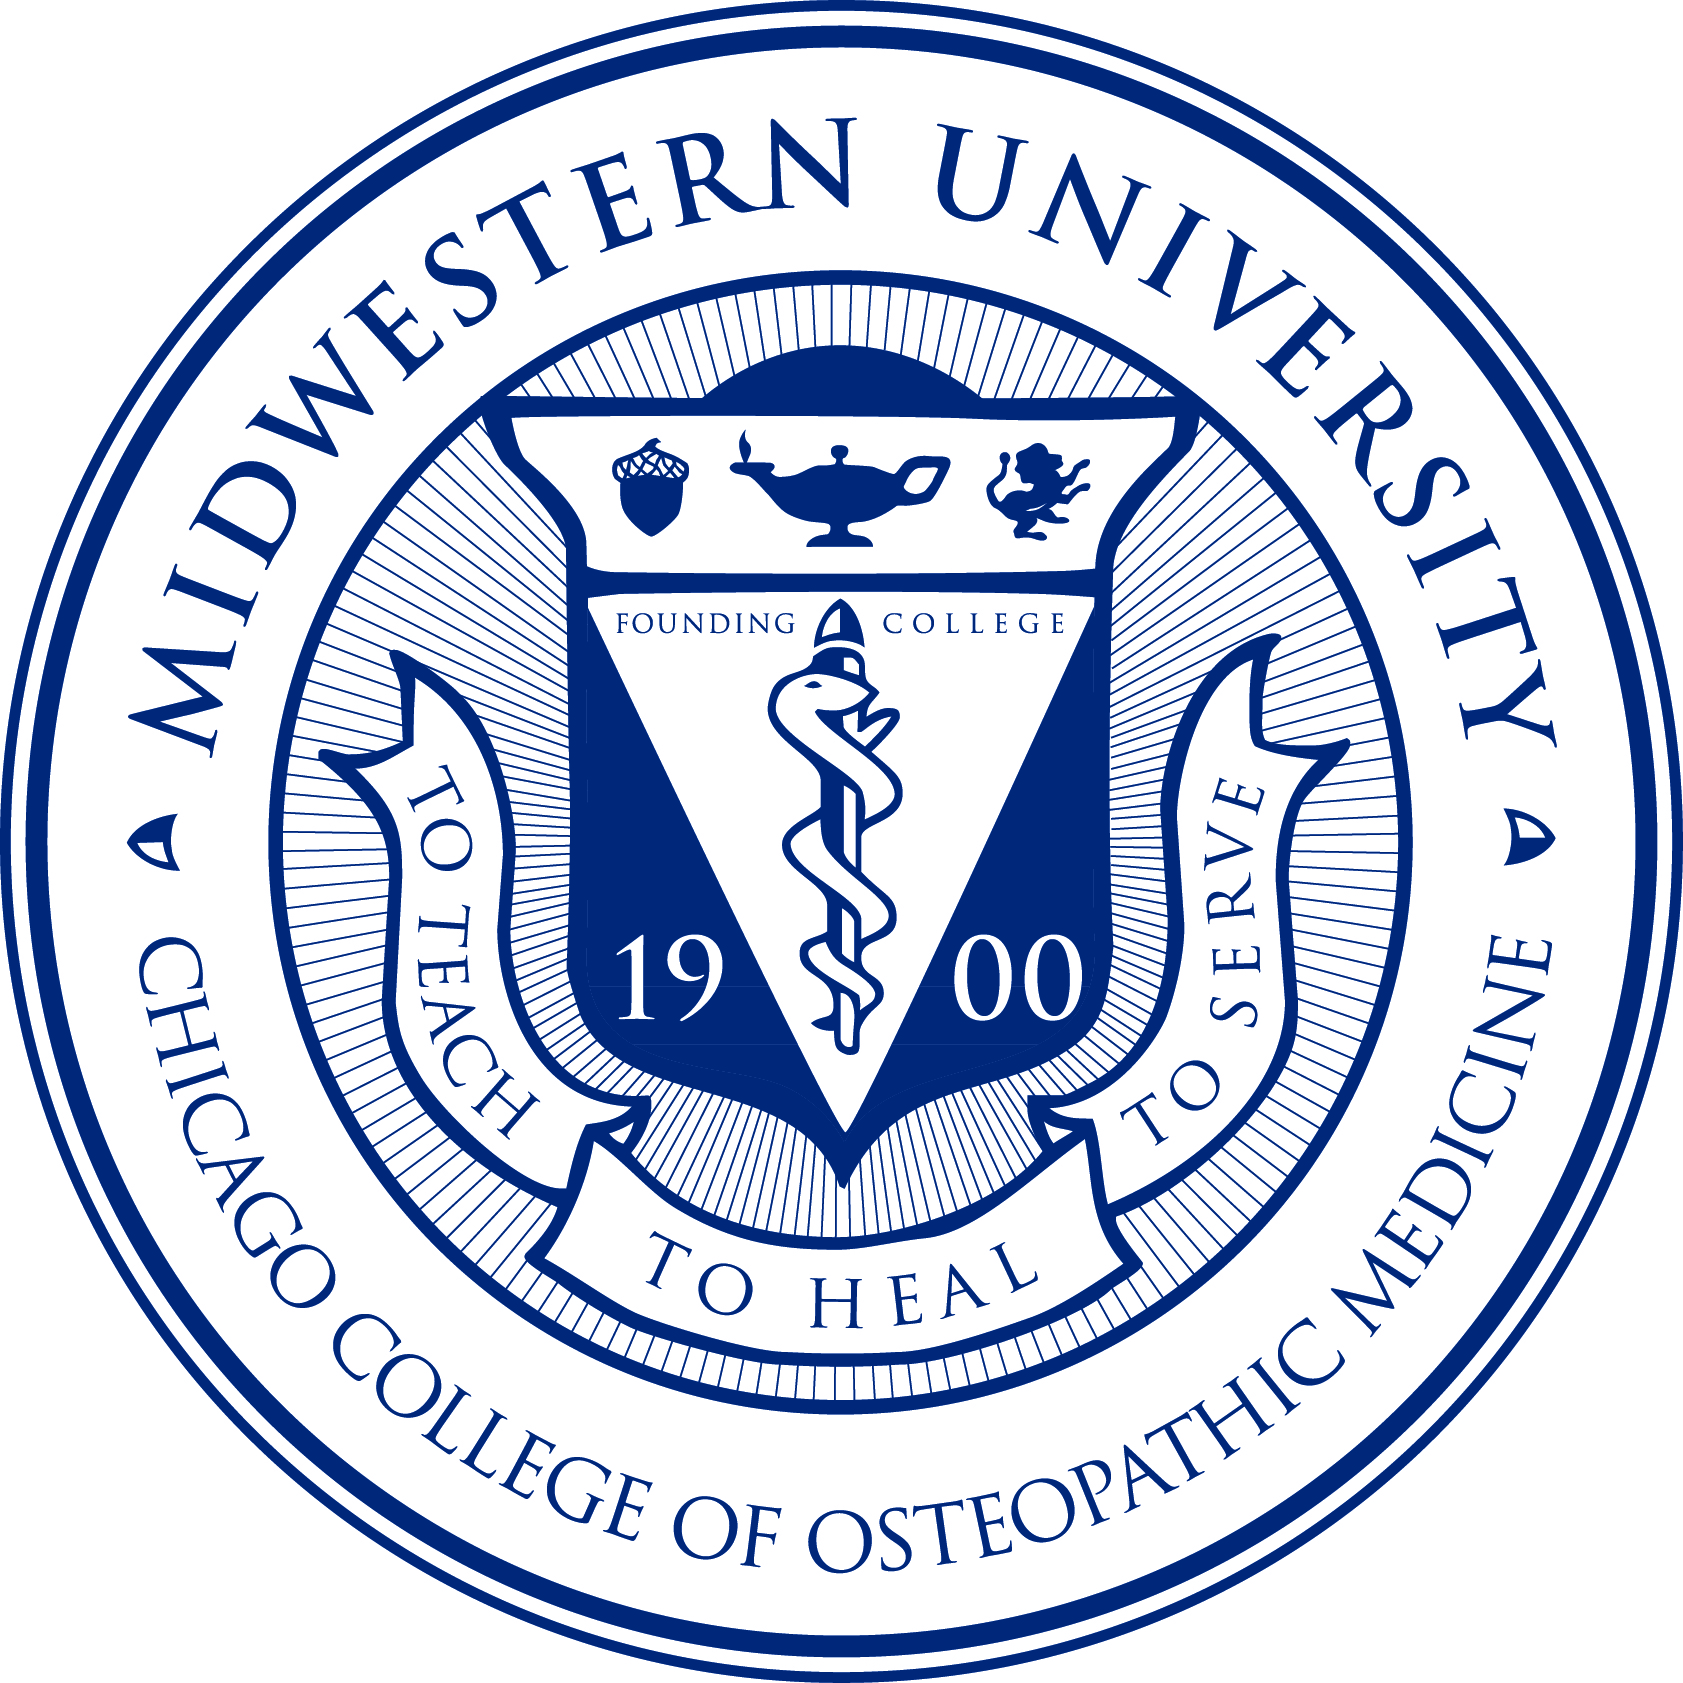 Chicago College of Osteopathic Medicine.